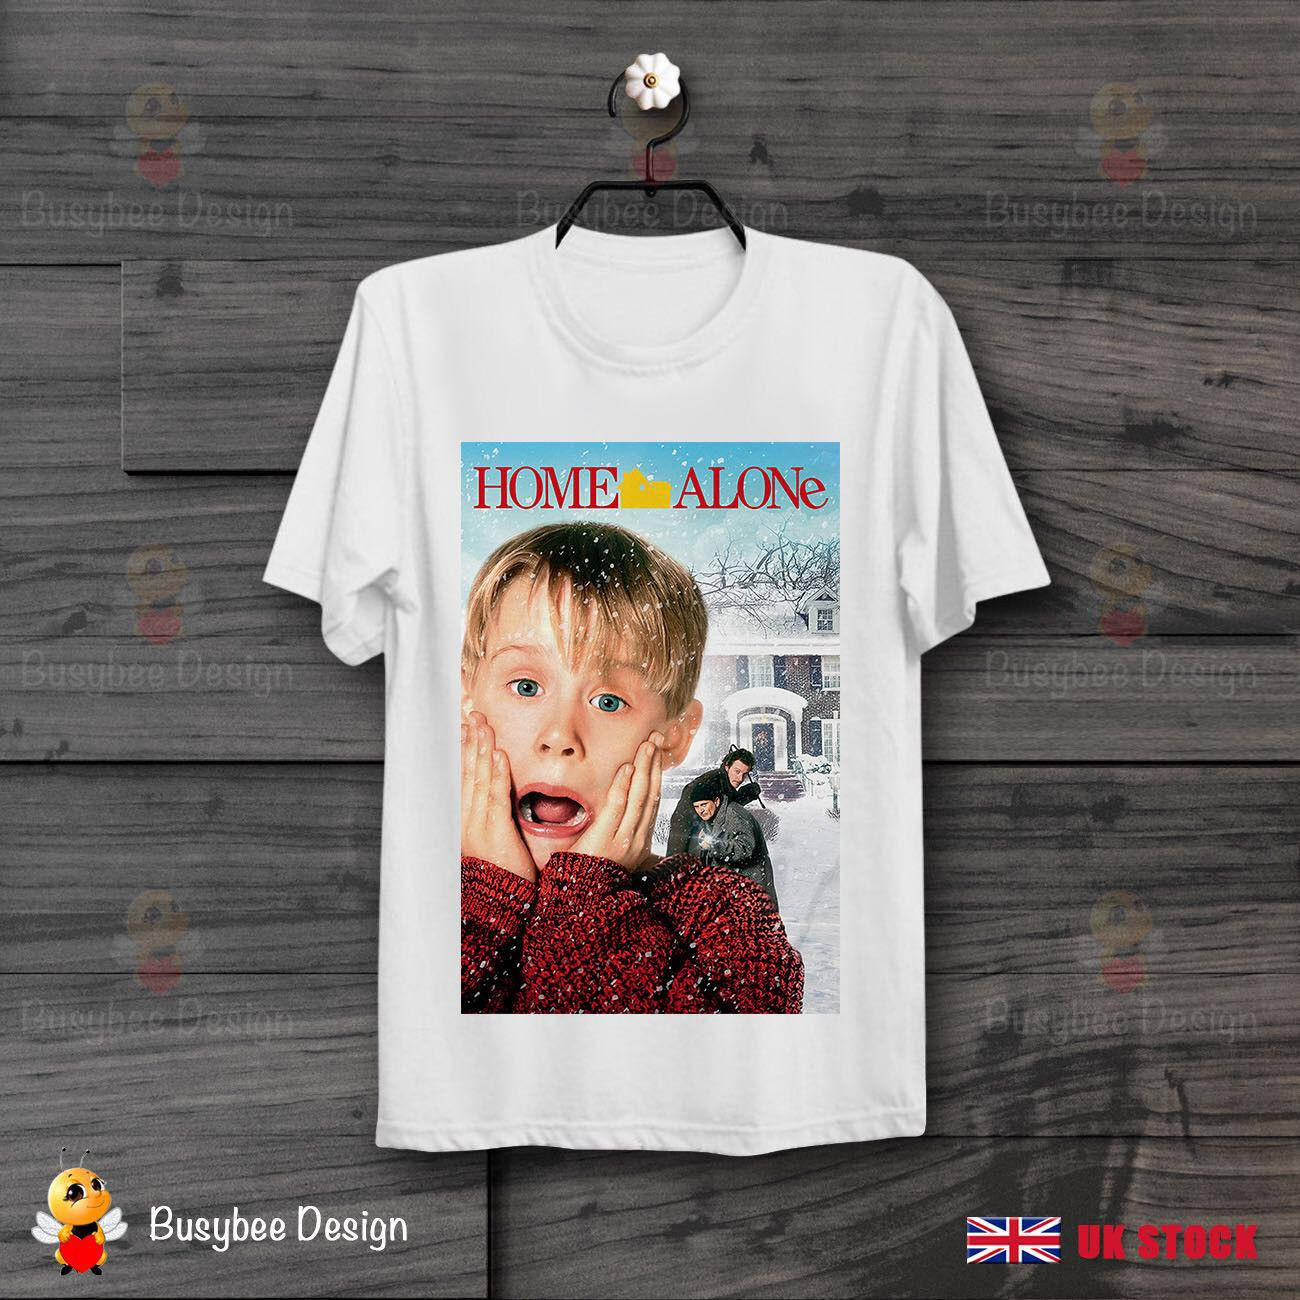 a45011259 HOME ALONE MOVIE POSTER COOL FUNNY VINTAGE UNISEX T Shirt B261 Funny Unisex  Casual Tee Gift Awesome Tee Shirts Teet Shirts From Noveltgifts, $12.96   DHgate.